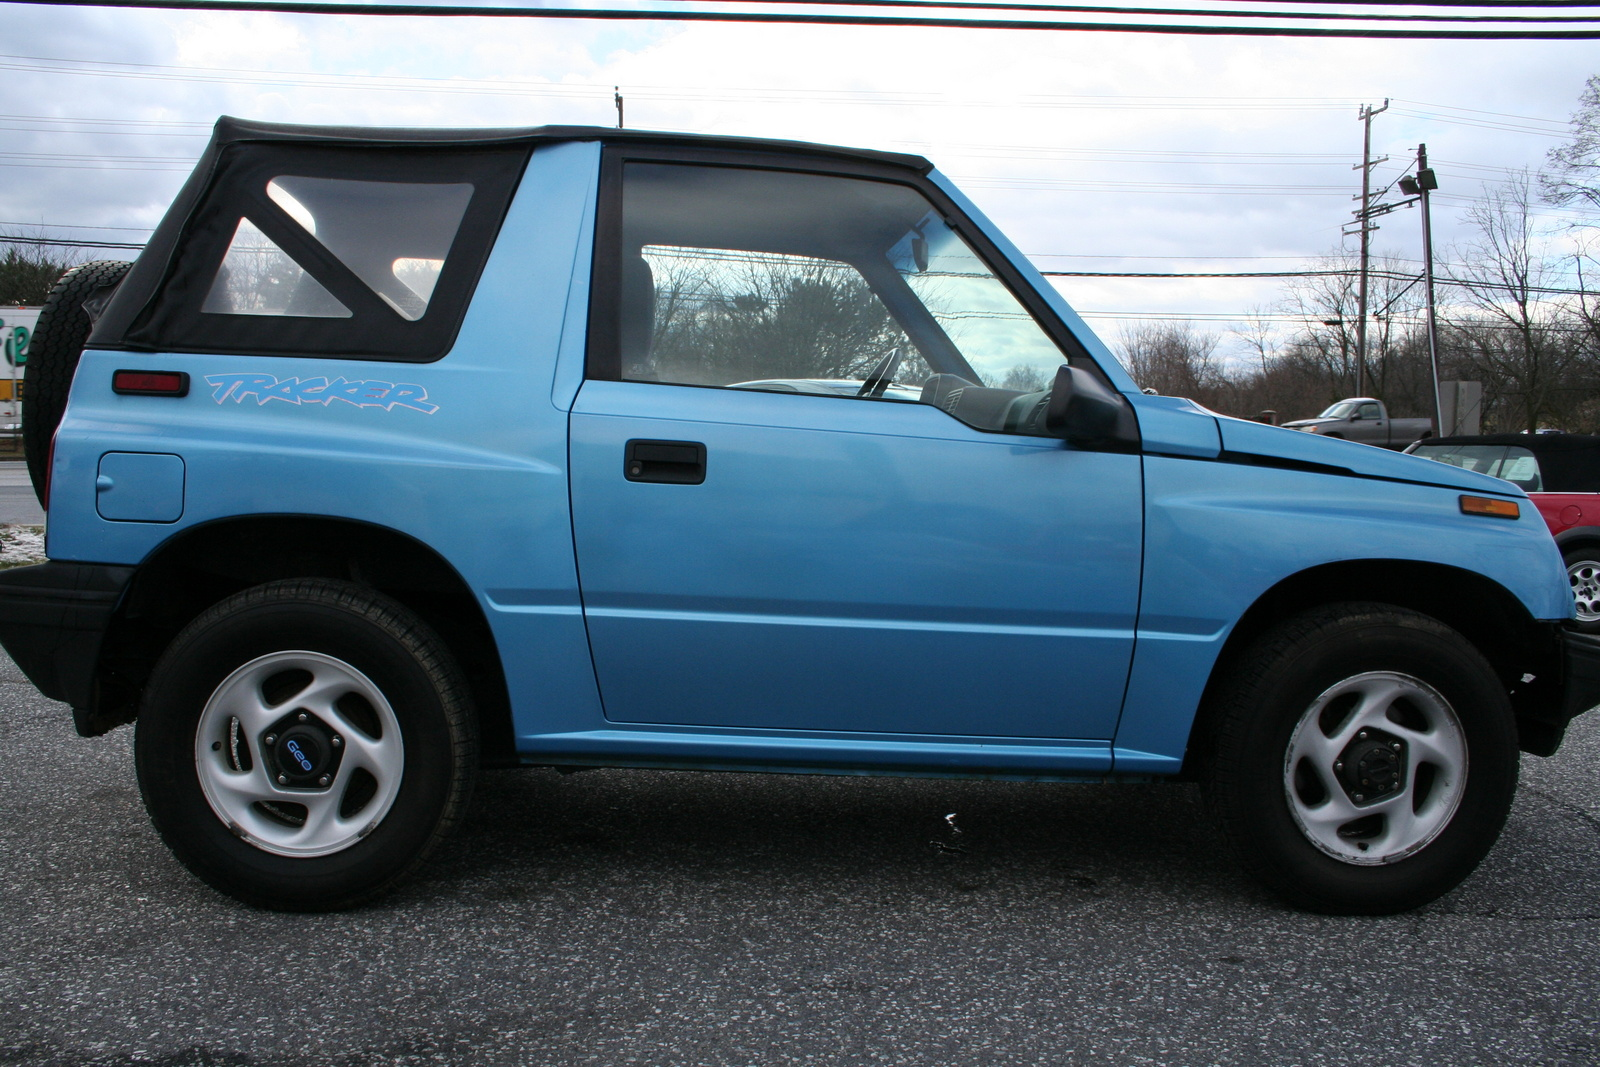 1995 Geo Tracker Soft Top Interior